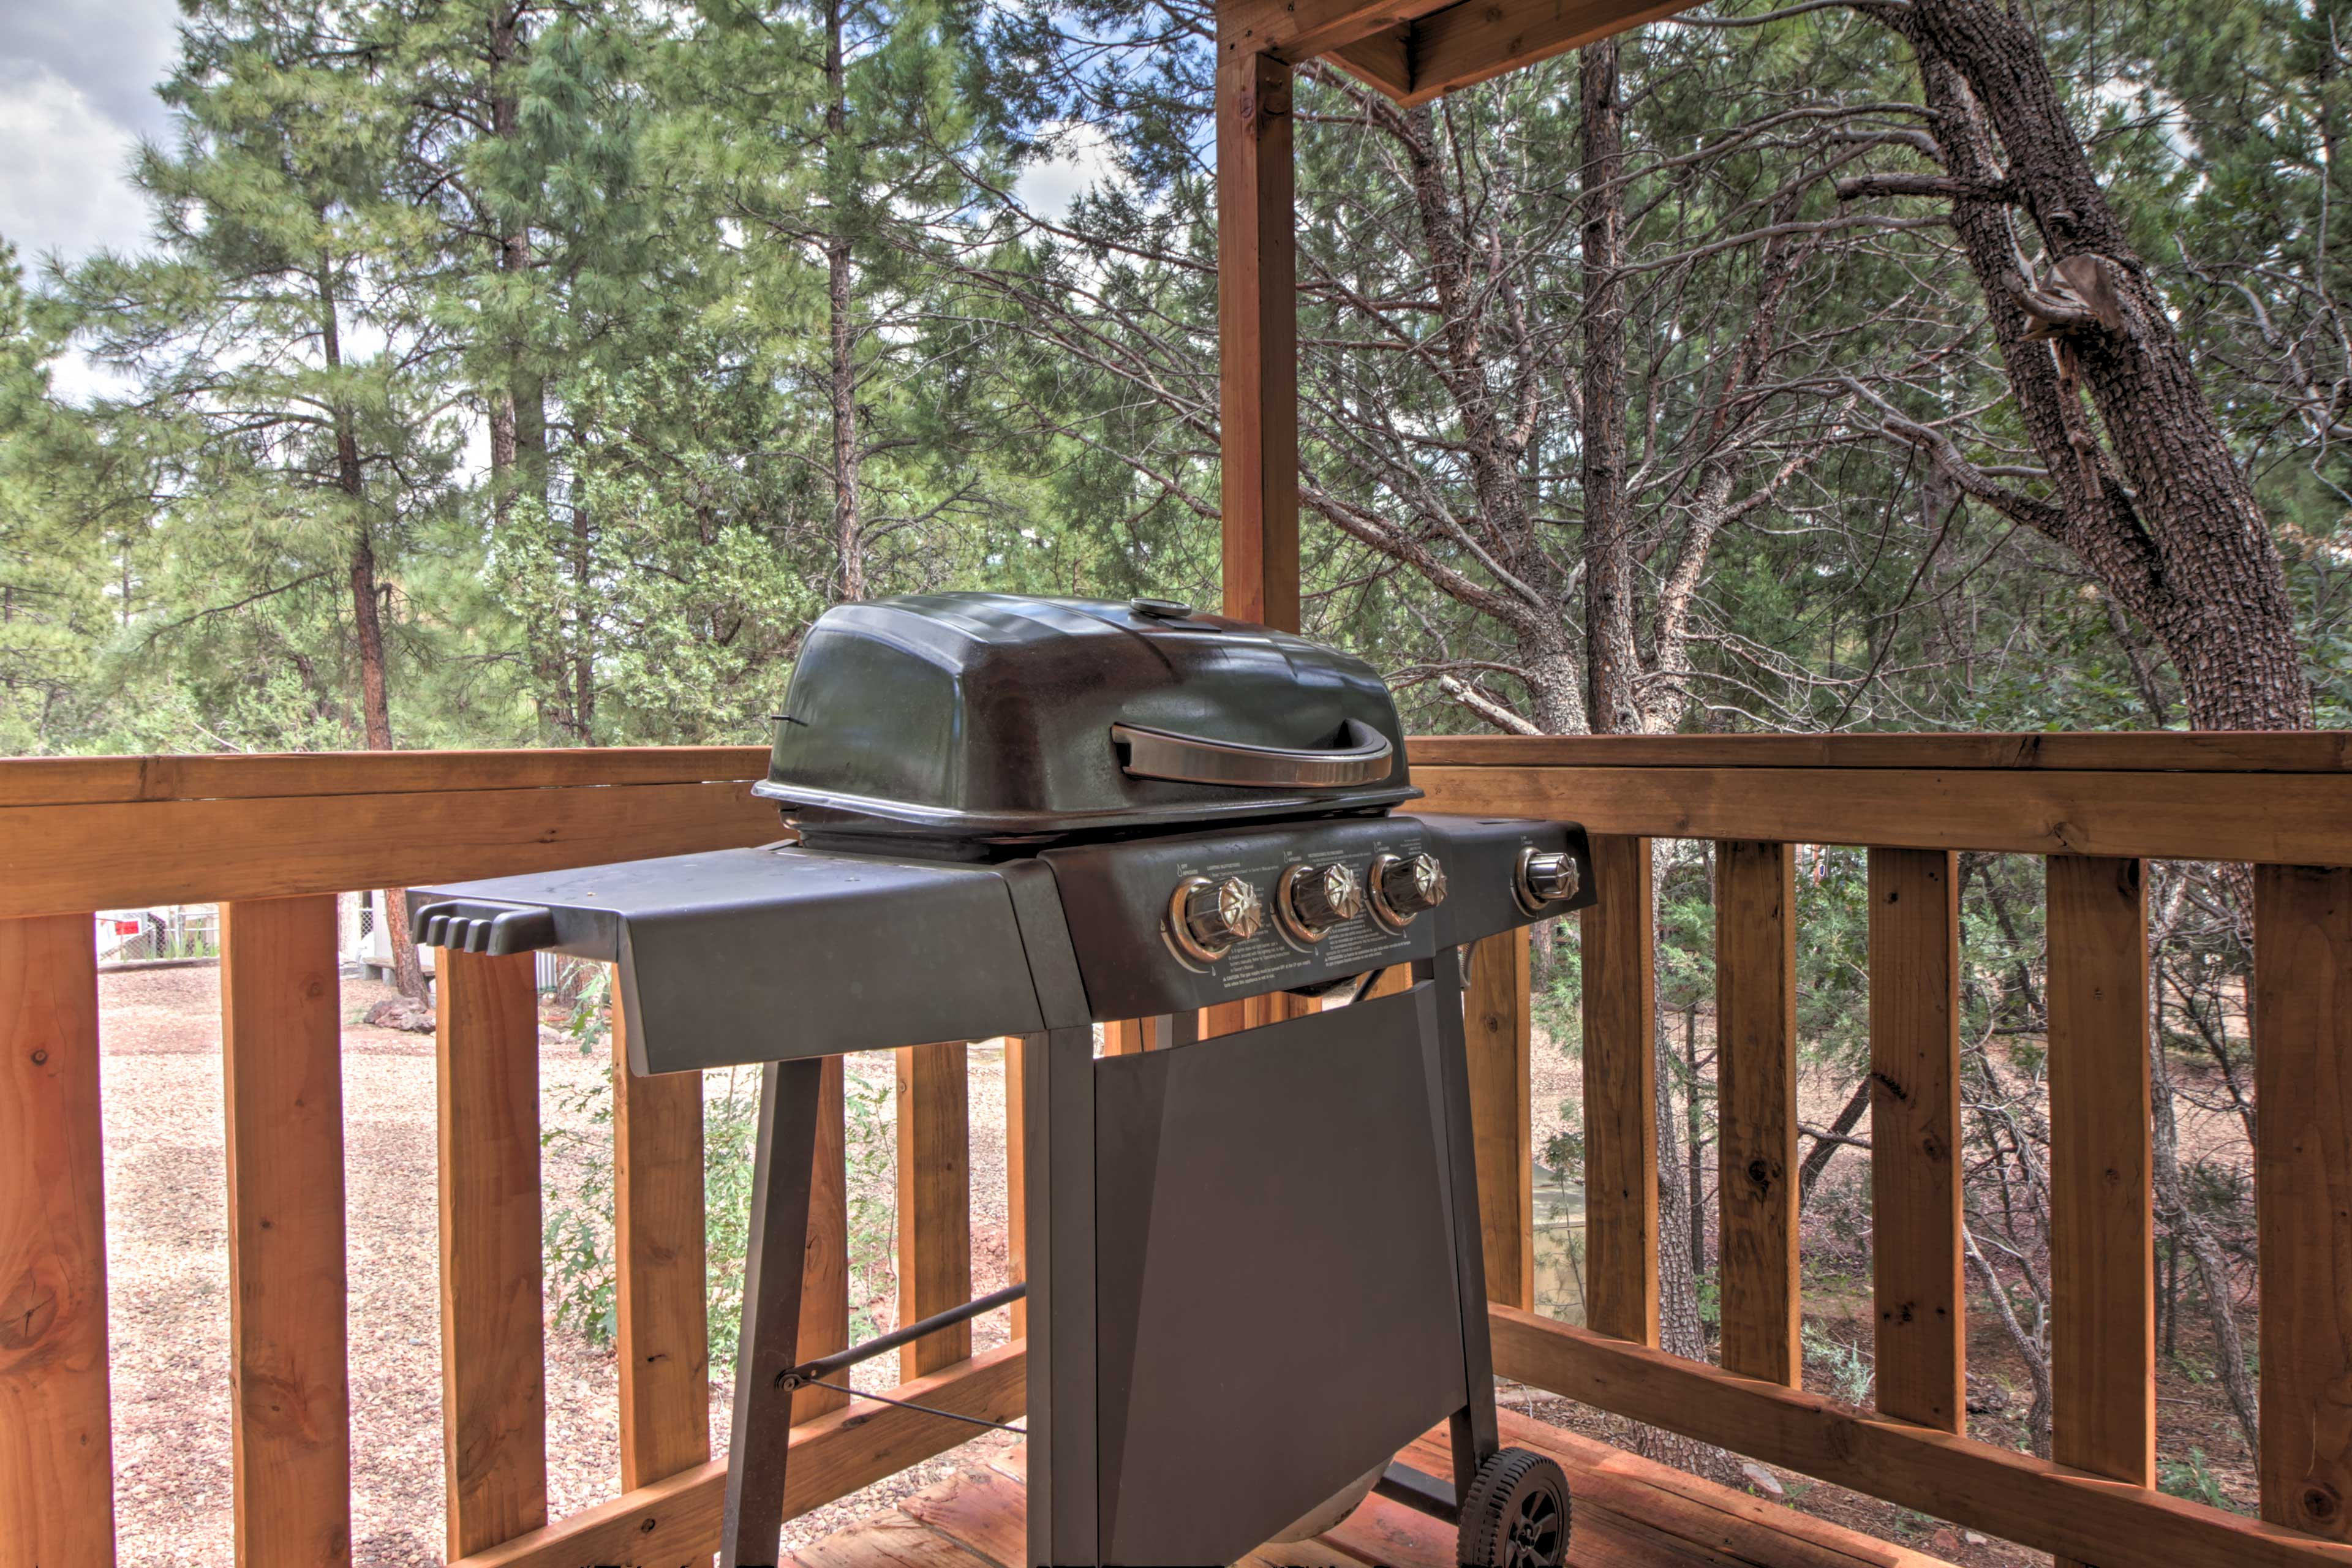 Fire up the gas grill for an at-home barbecue!